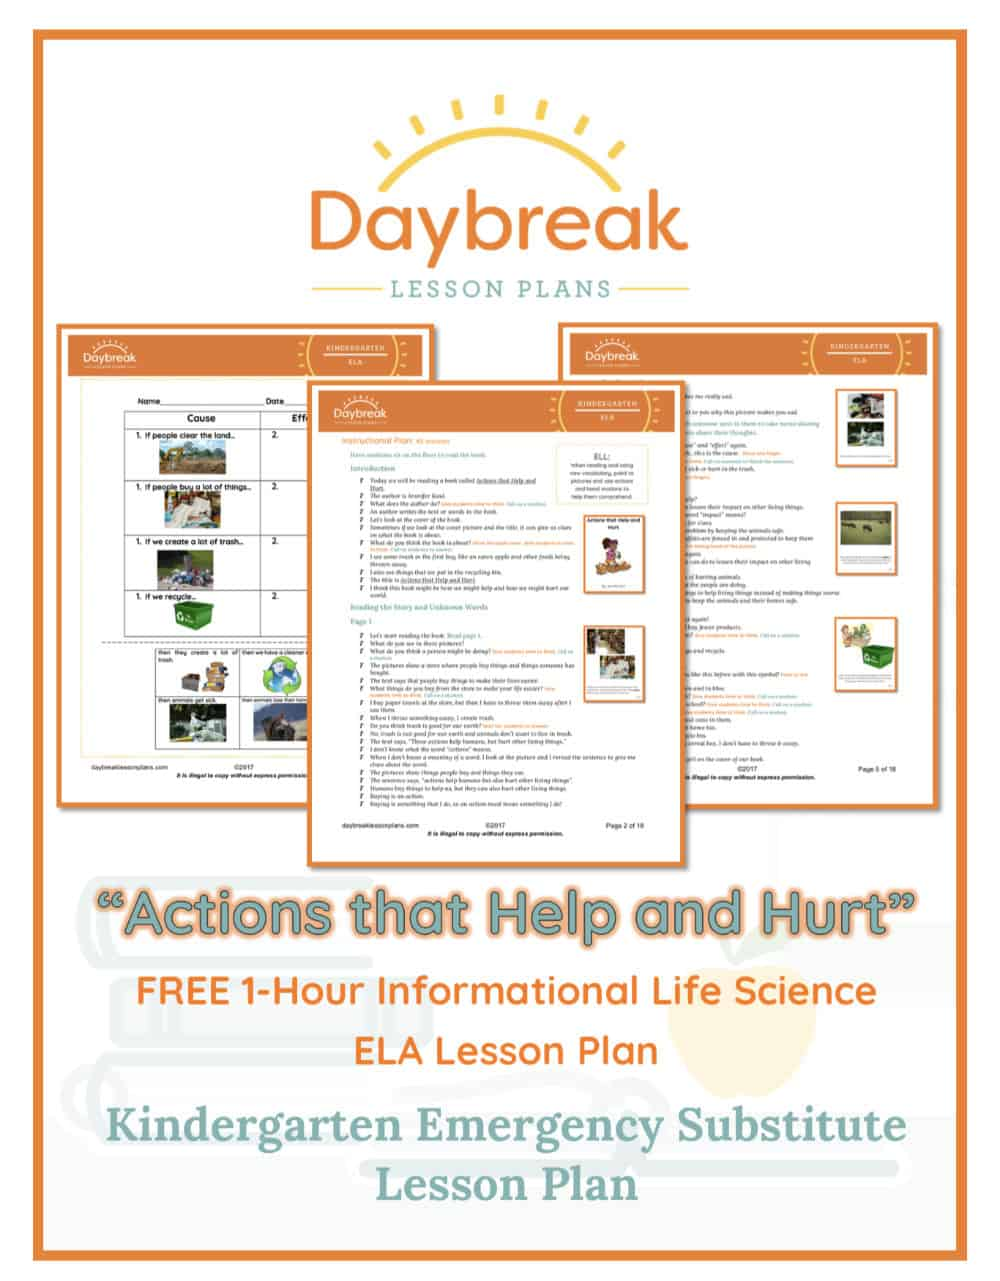 Illustration of the free Kindergarten ELA lesson plan covers